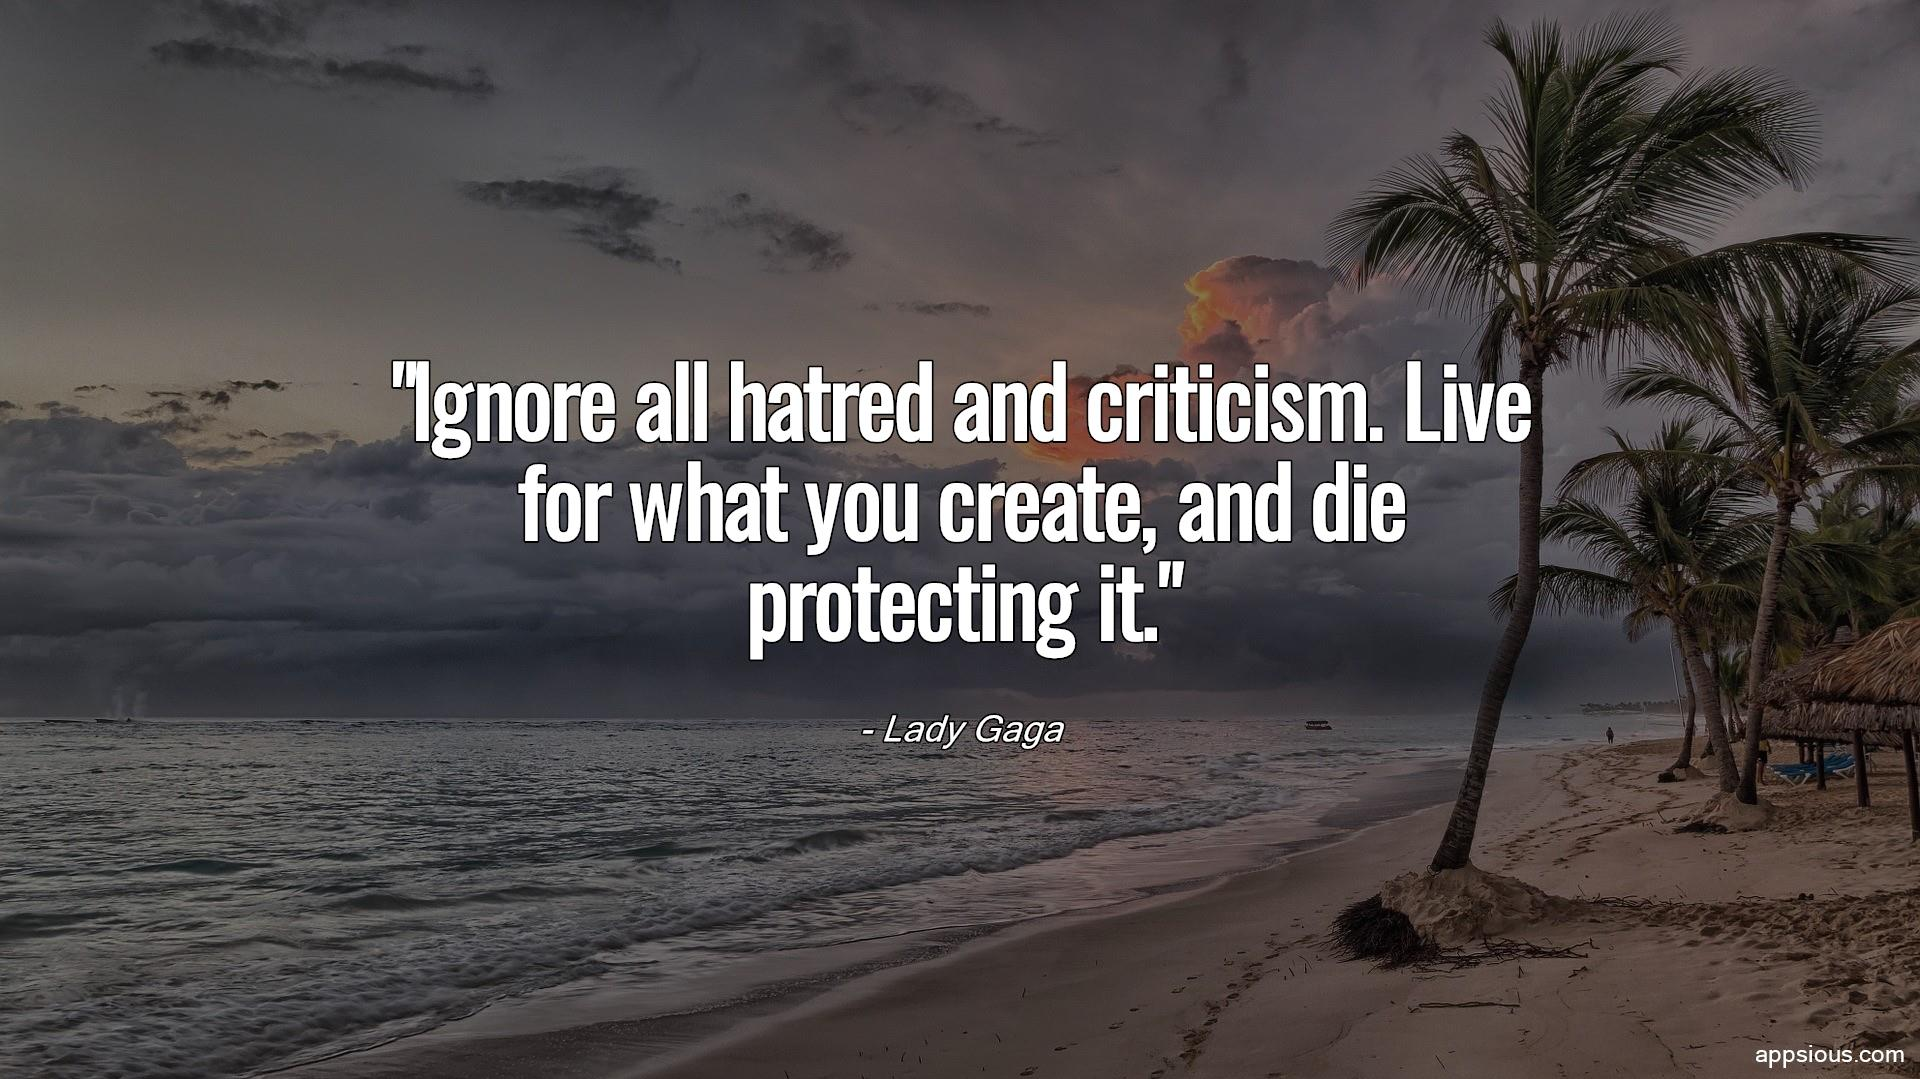 Ignore all hatred and criticism. Live for what you create, and die protecting it.